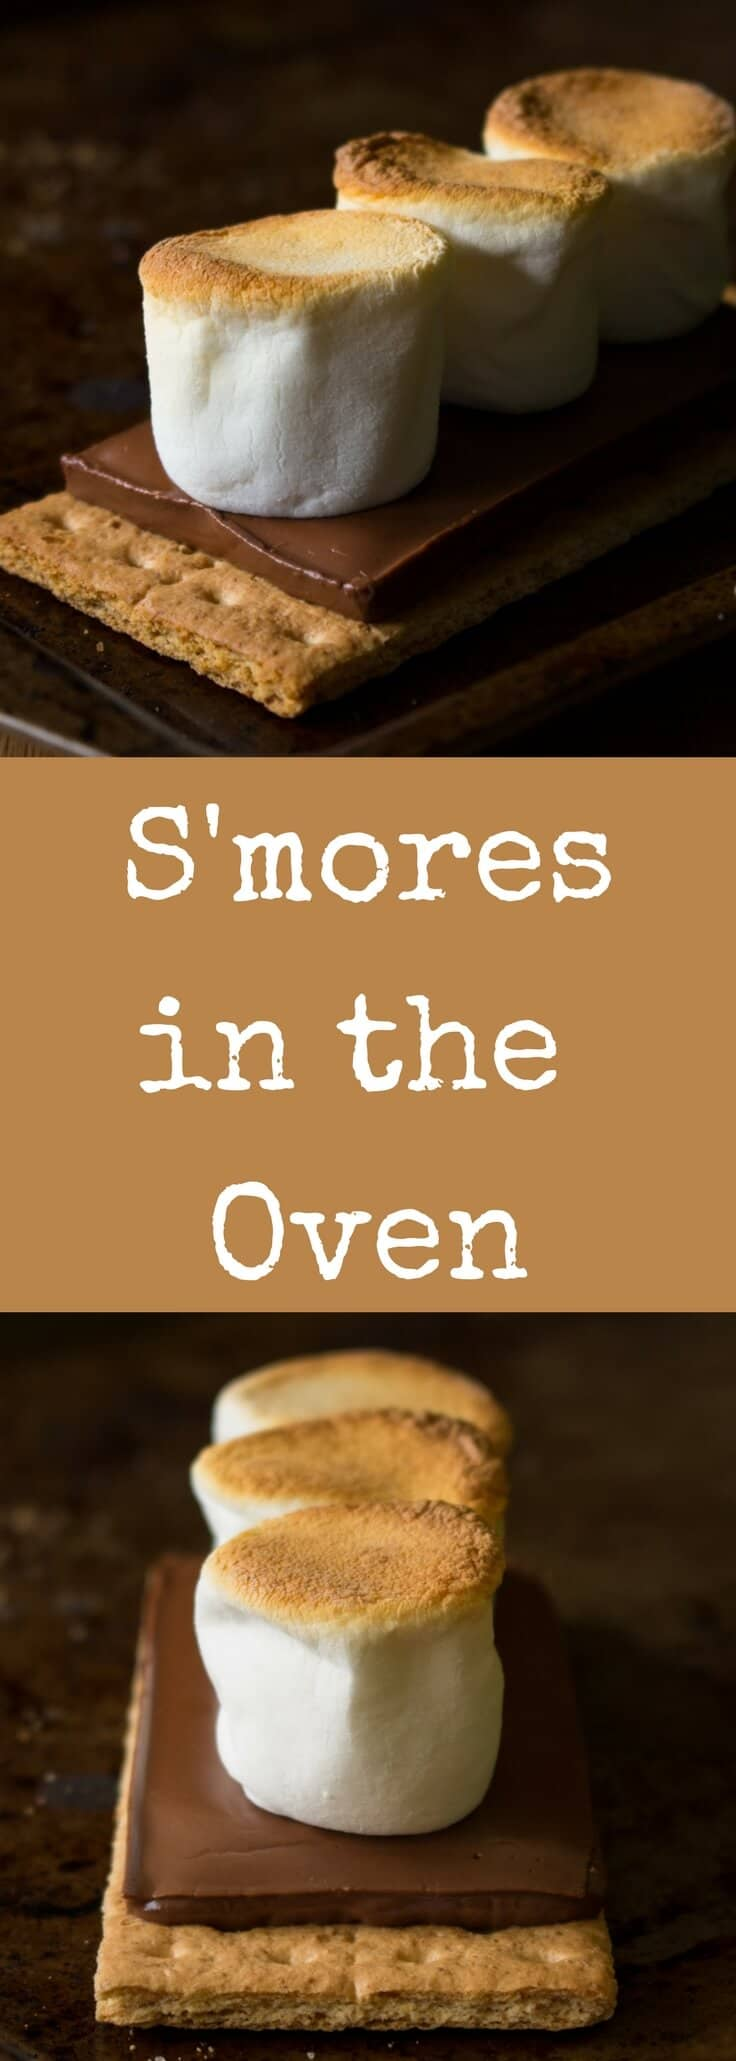 It\'s so easy to make smores in the oven! Make as many or as few as you want in just SECONDS with this super simple recipe. Fast and delicious!